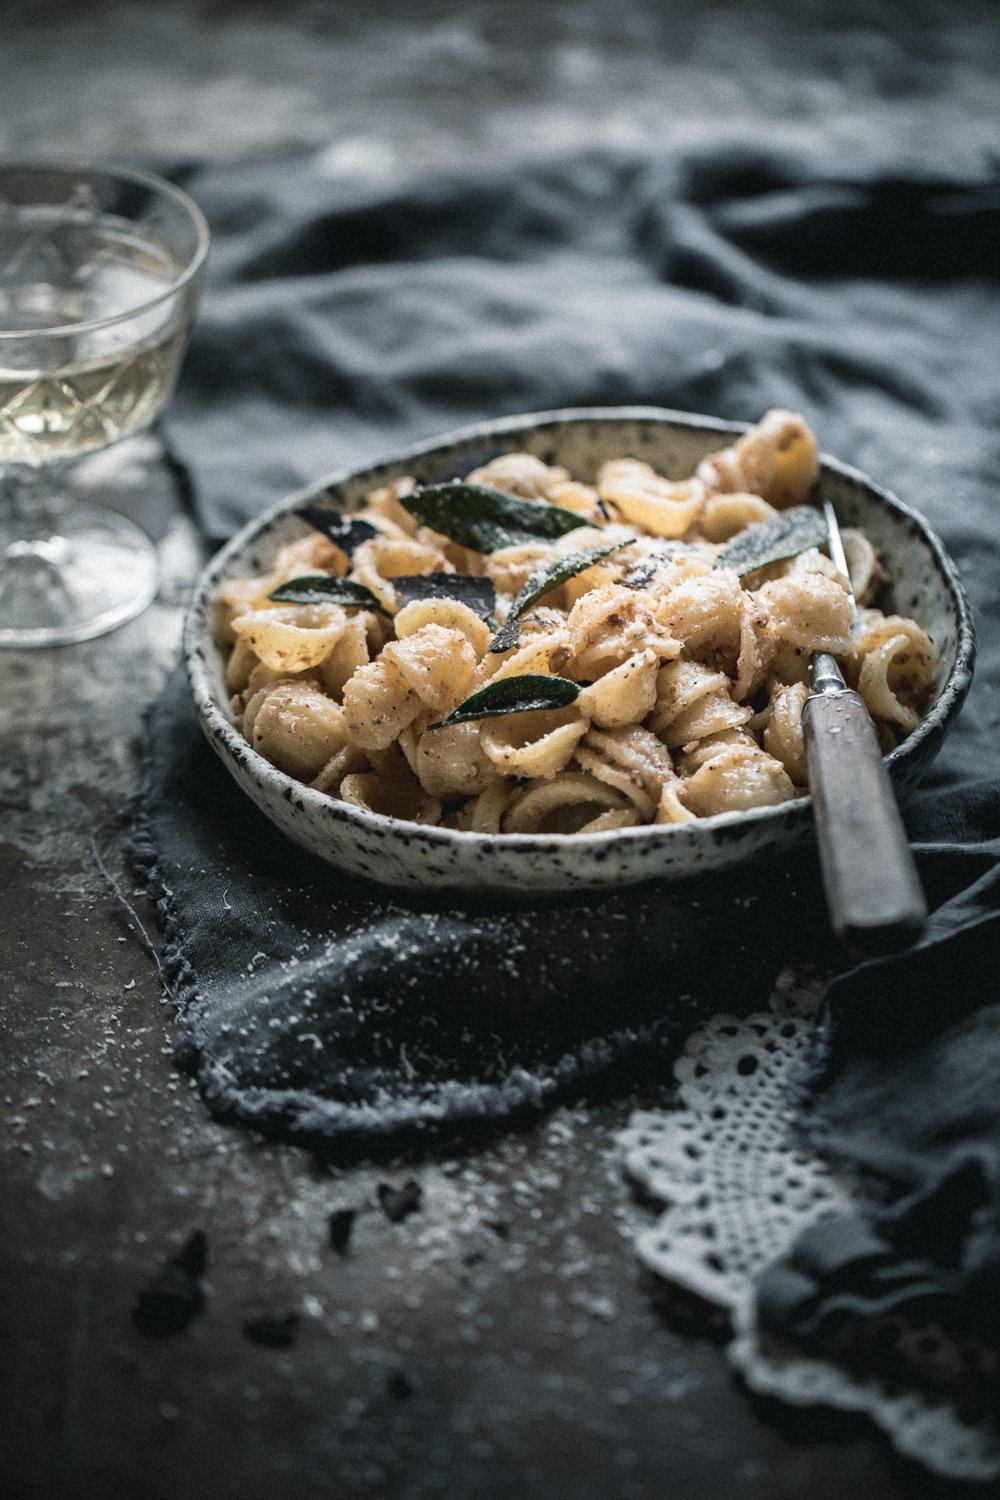 Black Truffle Burnt Butter, Walnut & Sage Orecchiette - Anisa Sabet - The Macadames - Food Travel Lifestyle Photographer-62